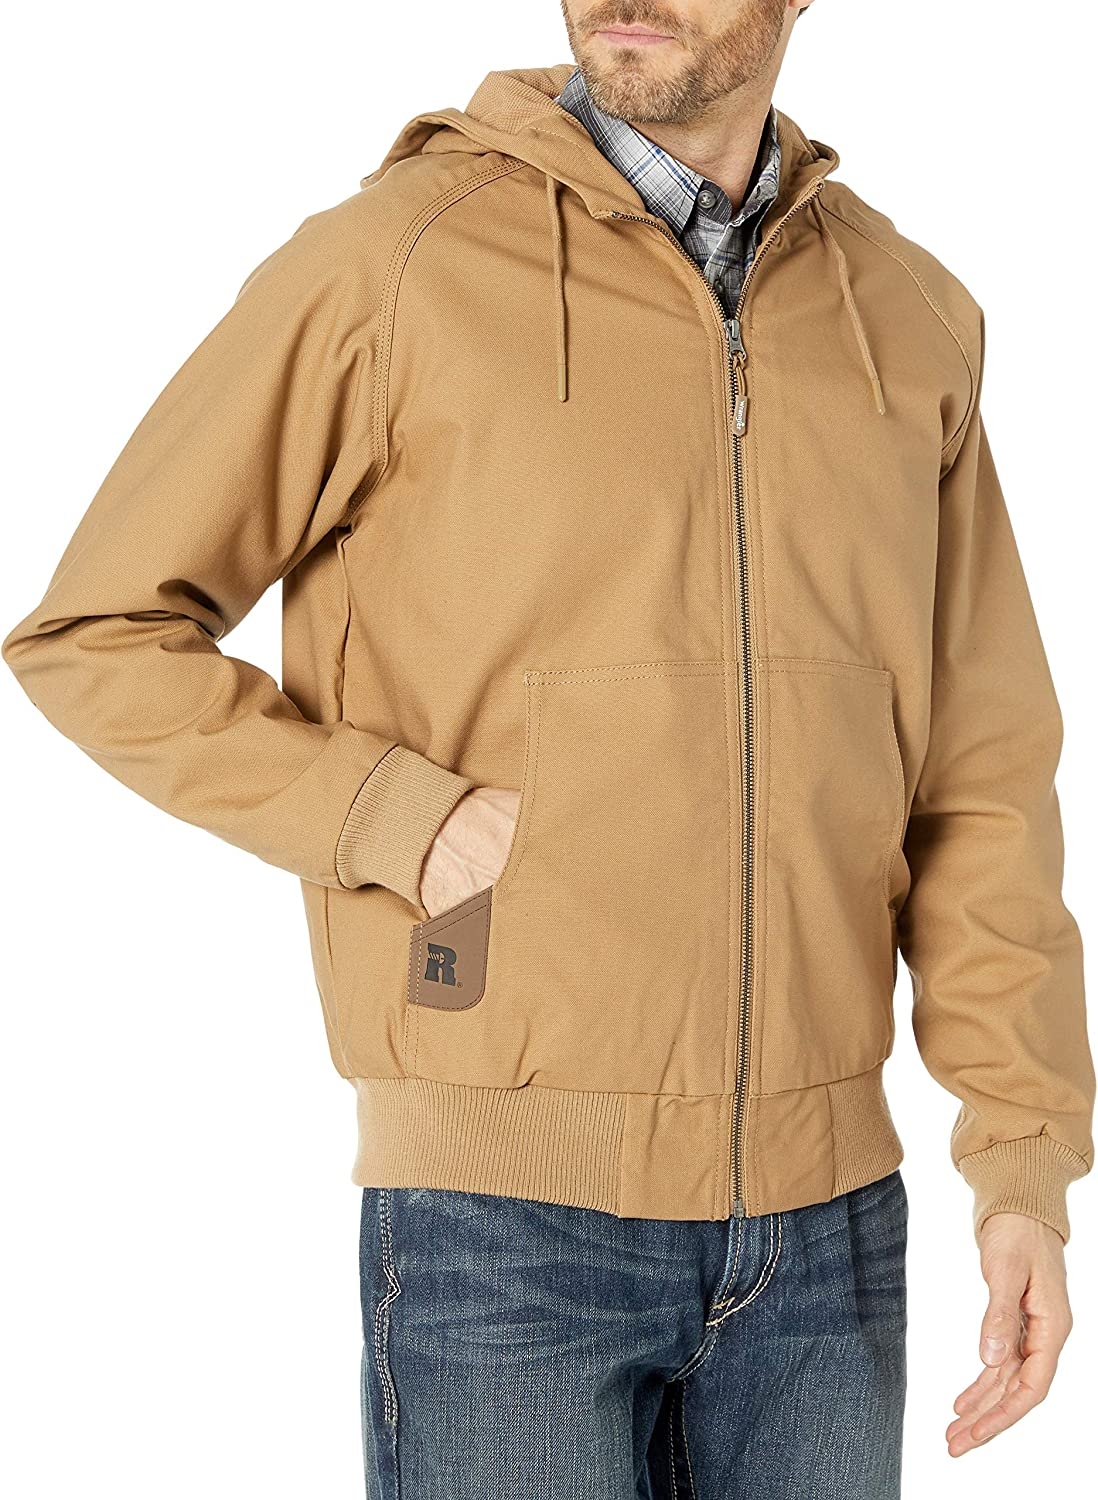 Wrangler Mens Workhorse Hooded Jacket Outerwear